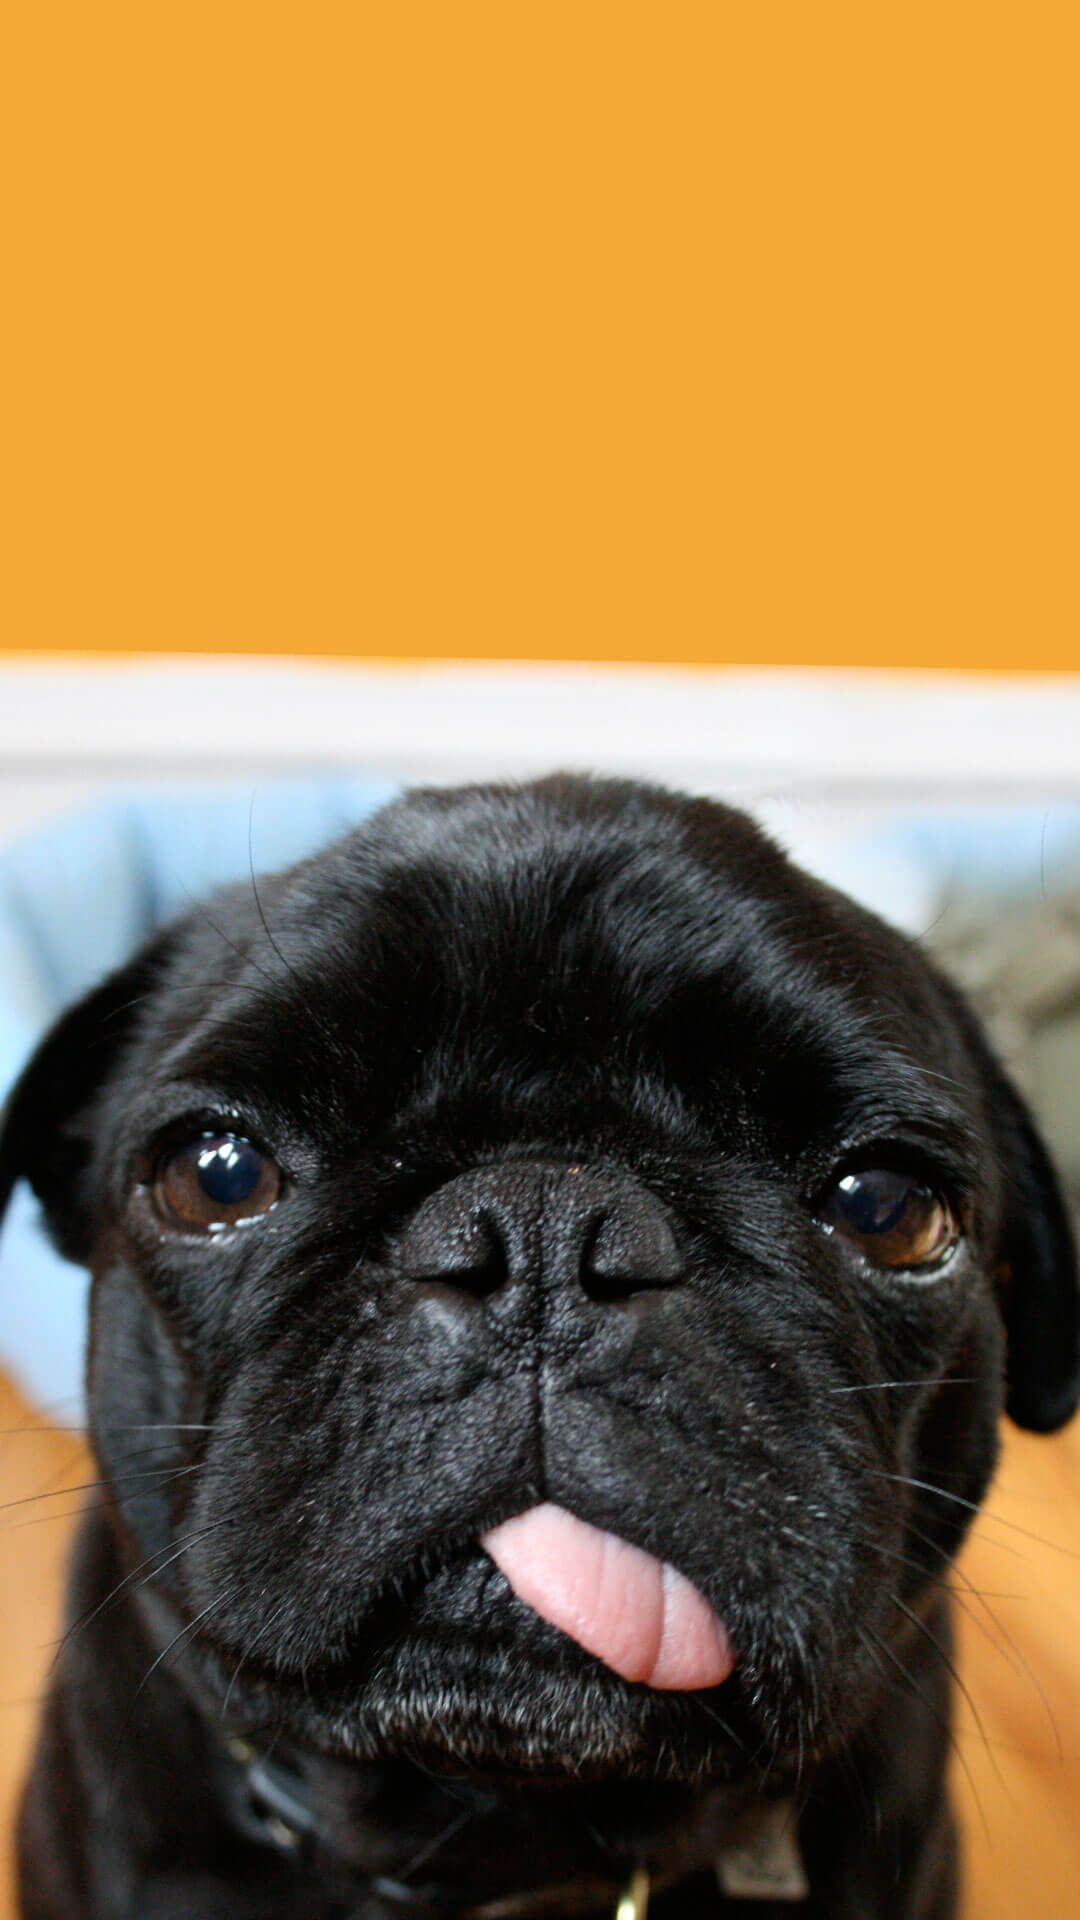 Cute Black Pug Wallpaper Iphone Hd Pug Wallpaper Dog Wallpaper